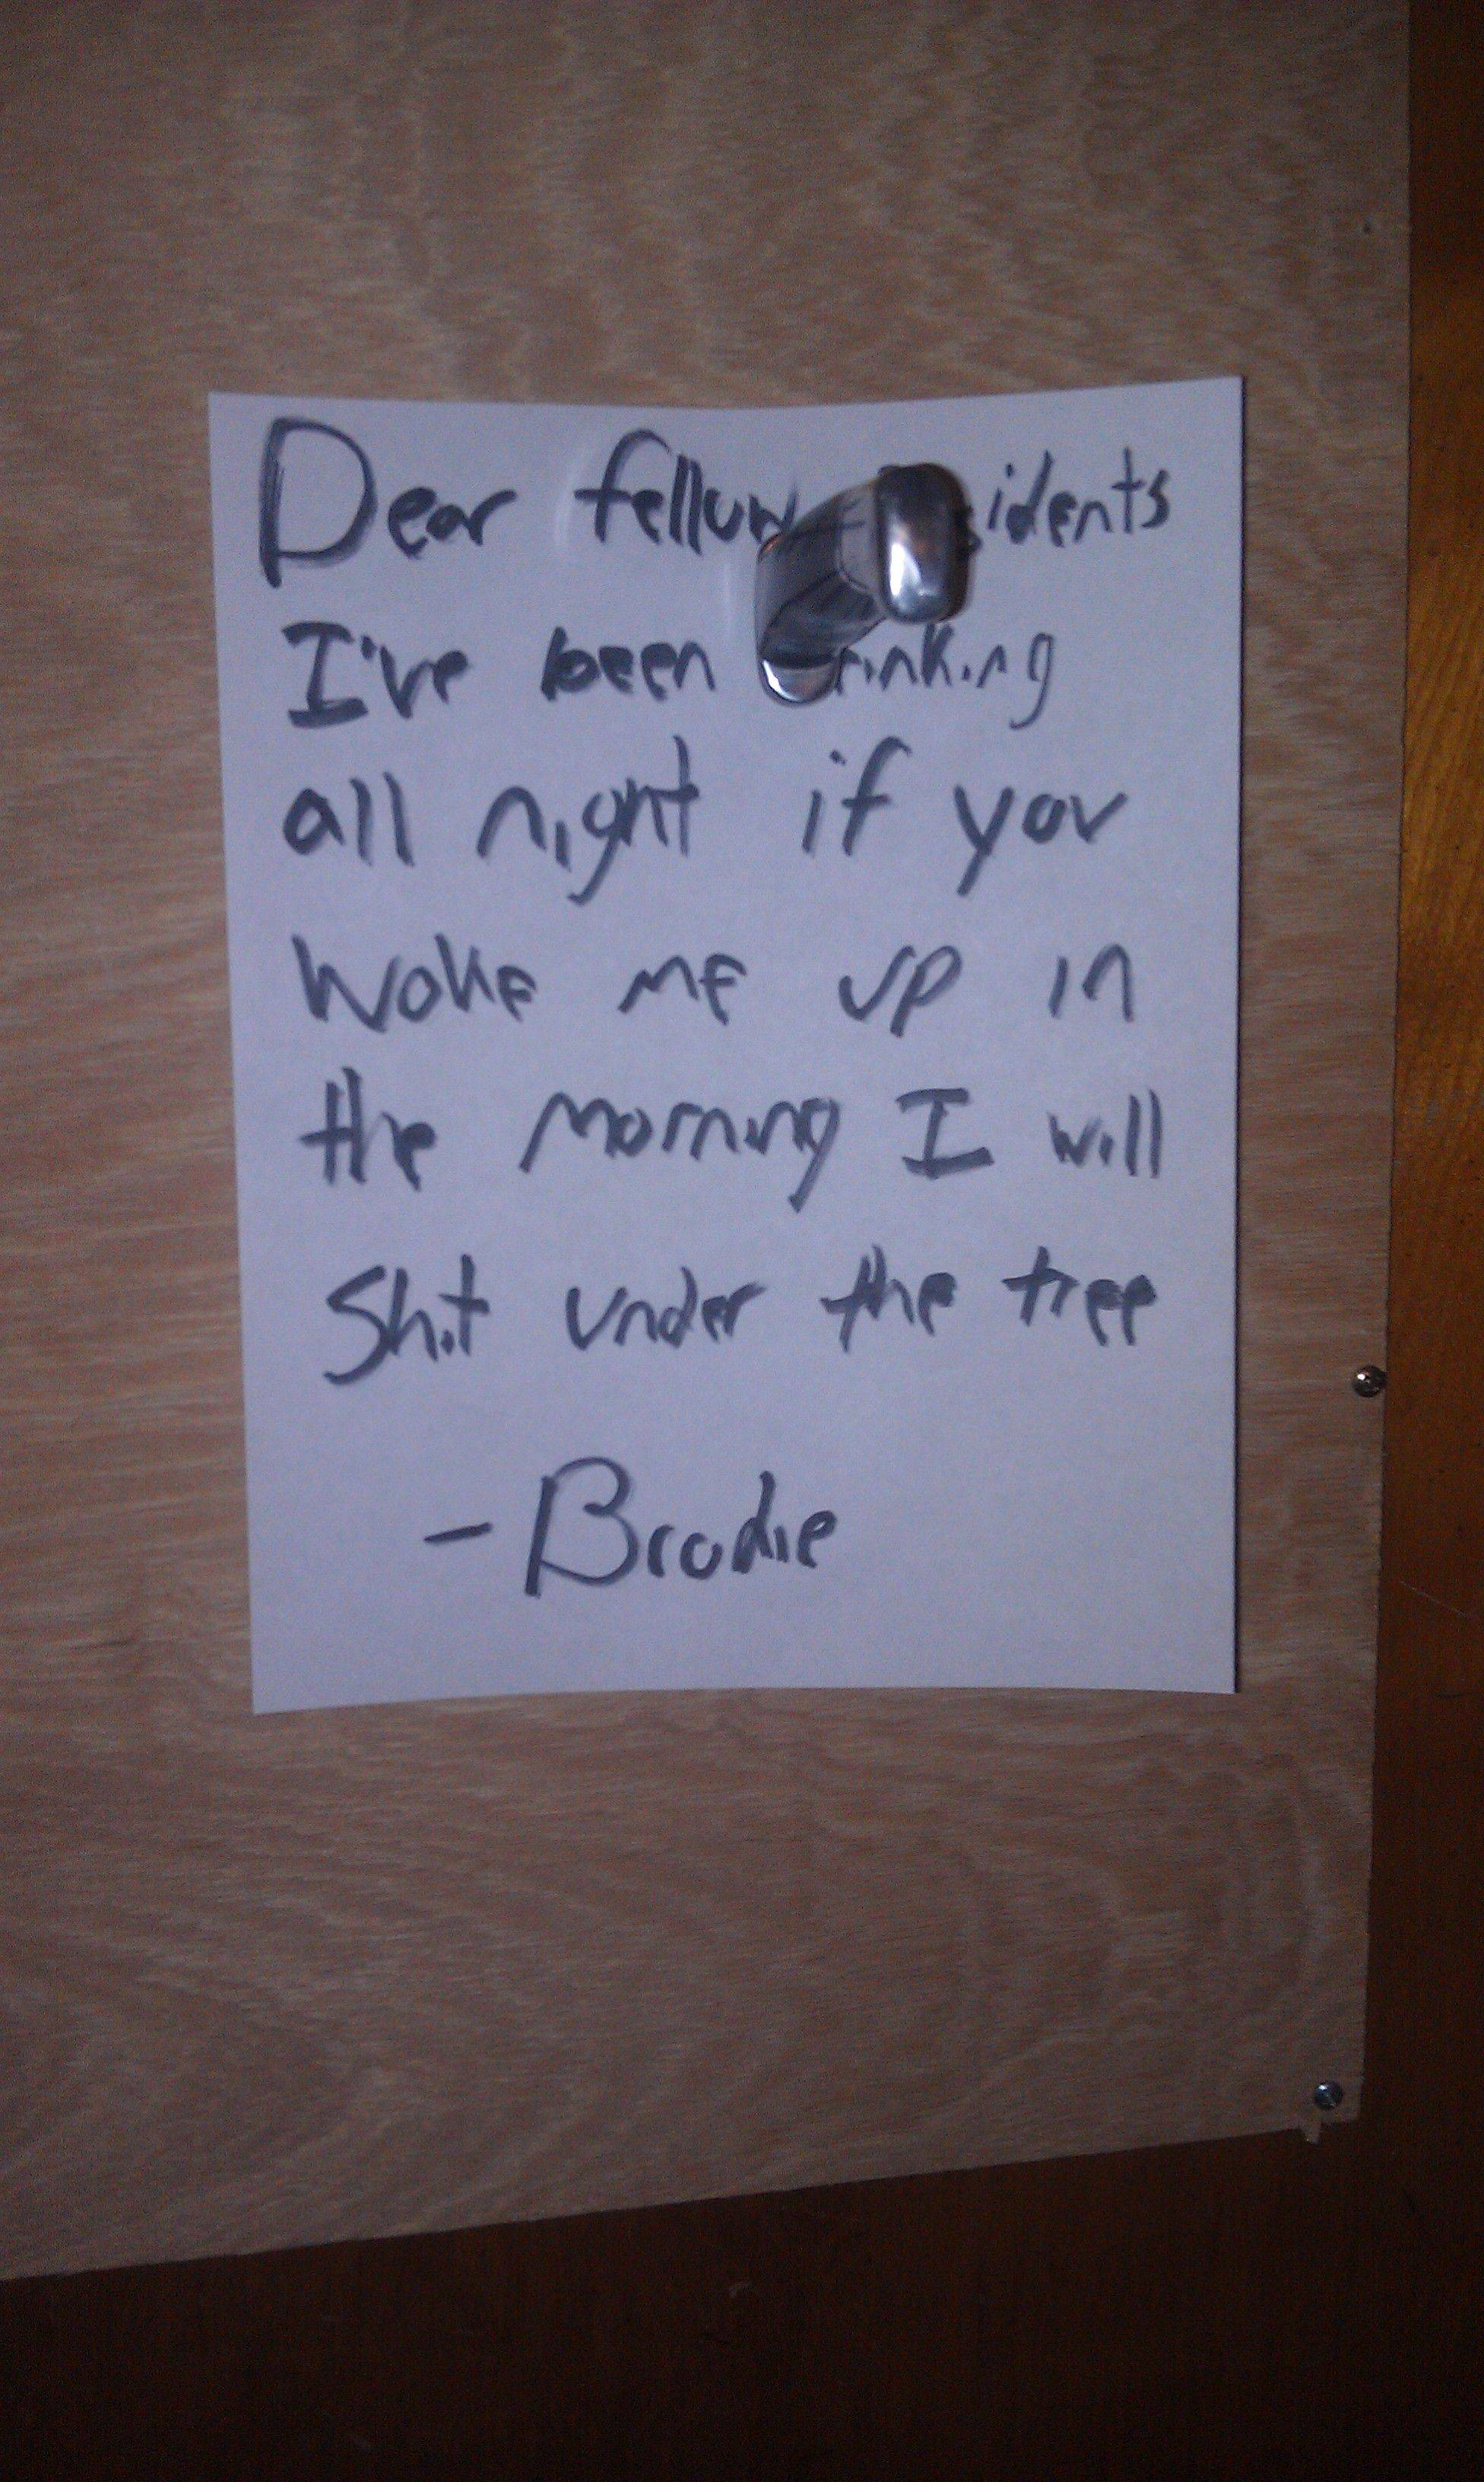 Hungover roommate leaves note threatening worst Christmas present ever.